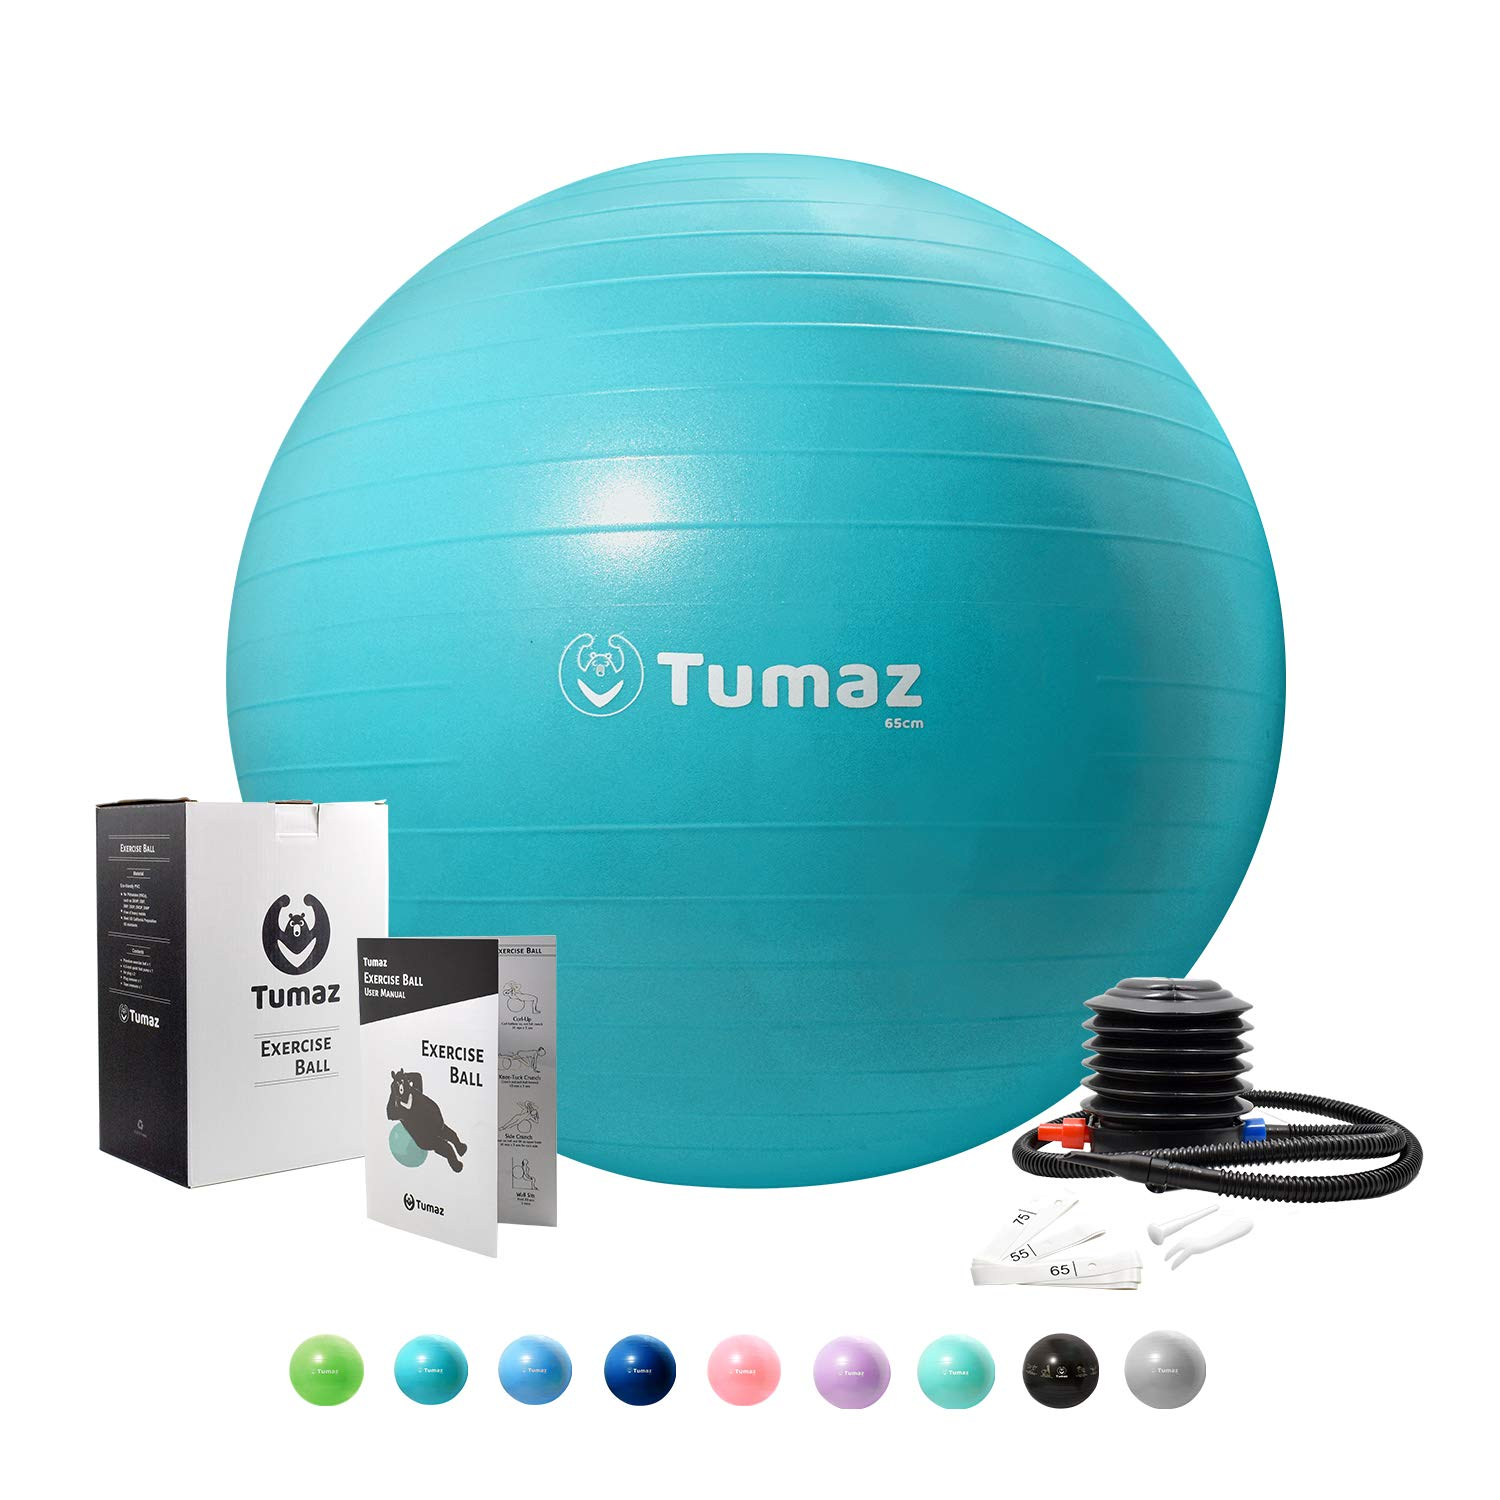 Tumaz Exercise Ball with Quick Pump, Anti Burst/Extra Thick/Heavy Duty, Great for Ball Chair, Birth Ball, Balance Ball, Swiss Ball, Pilates, Yoga, and More